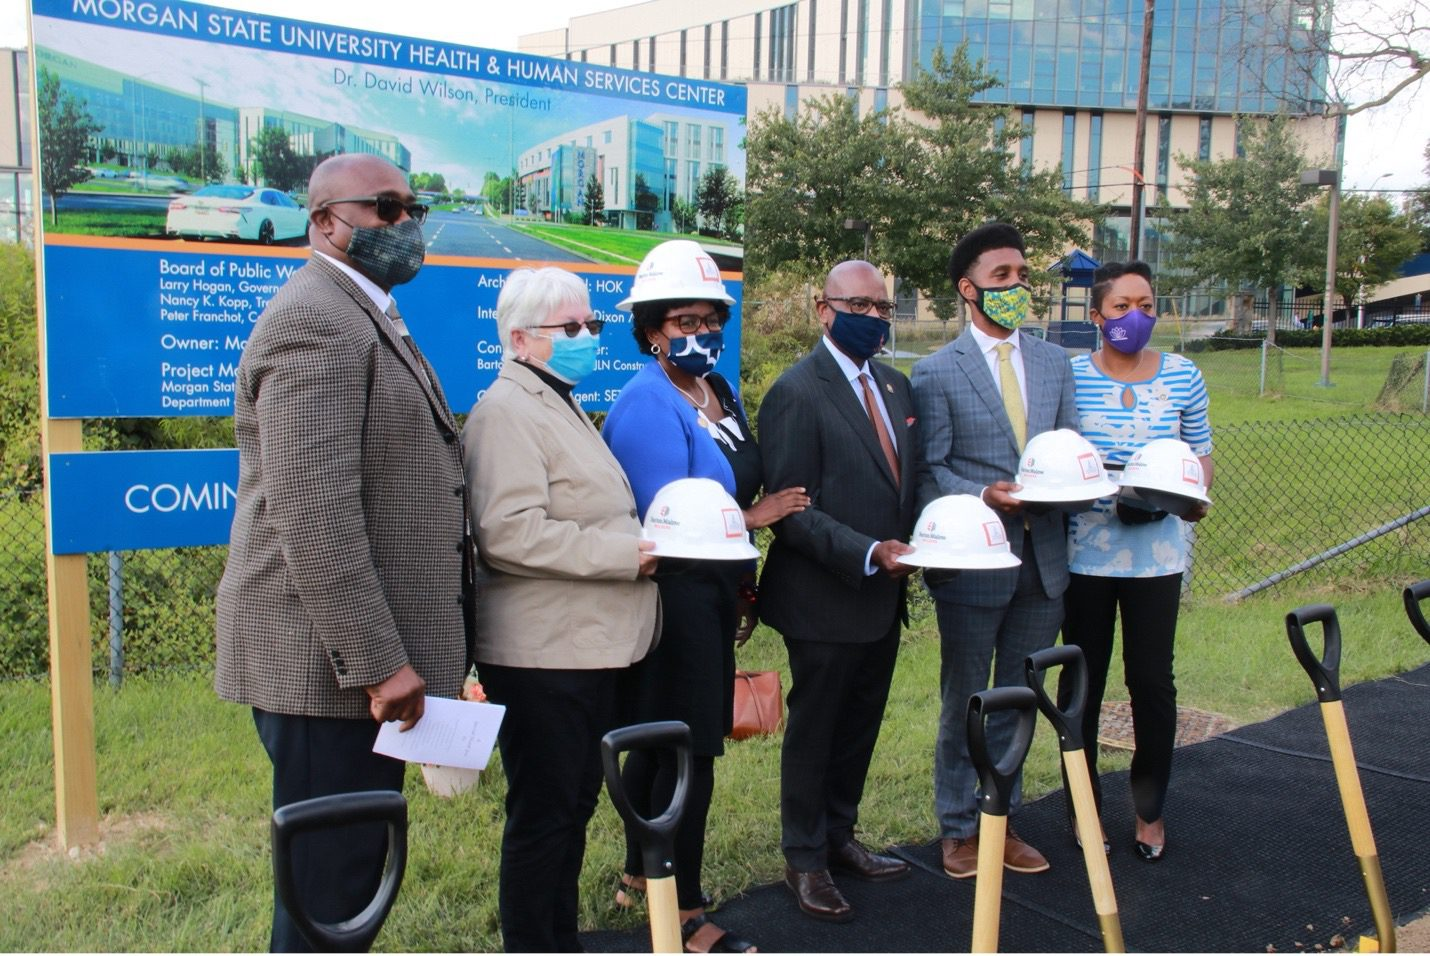 Leaders convene at Morgan State Health and Human Services groundbreaking.